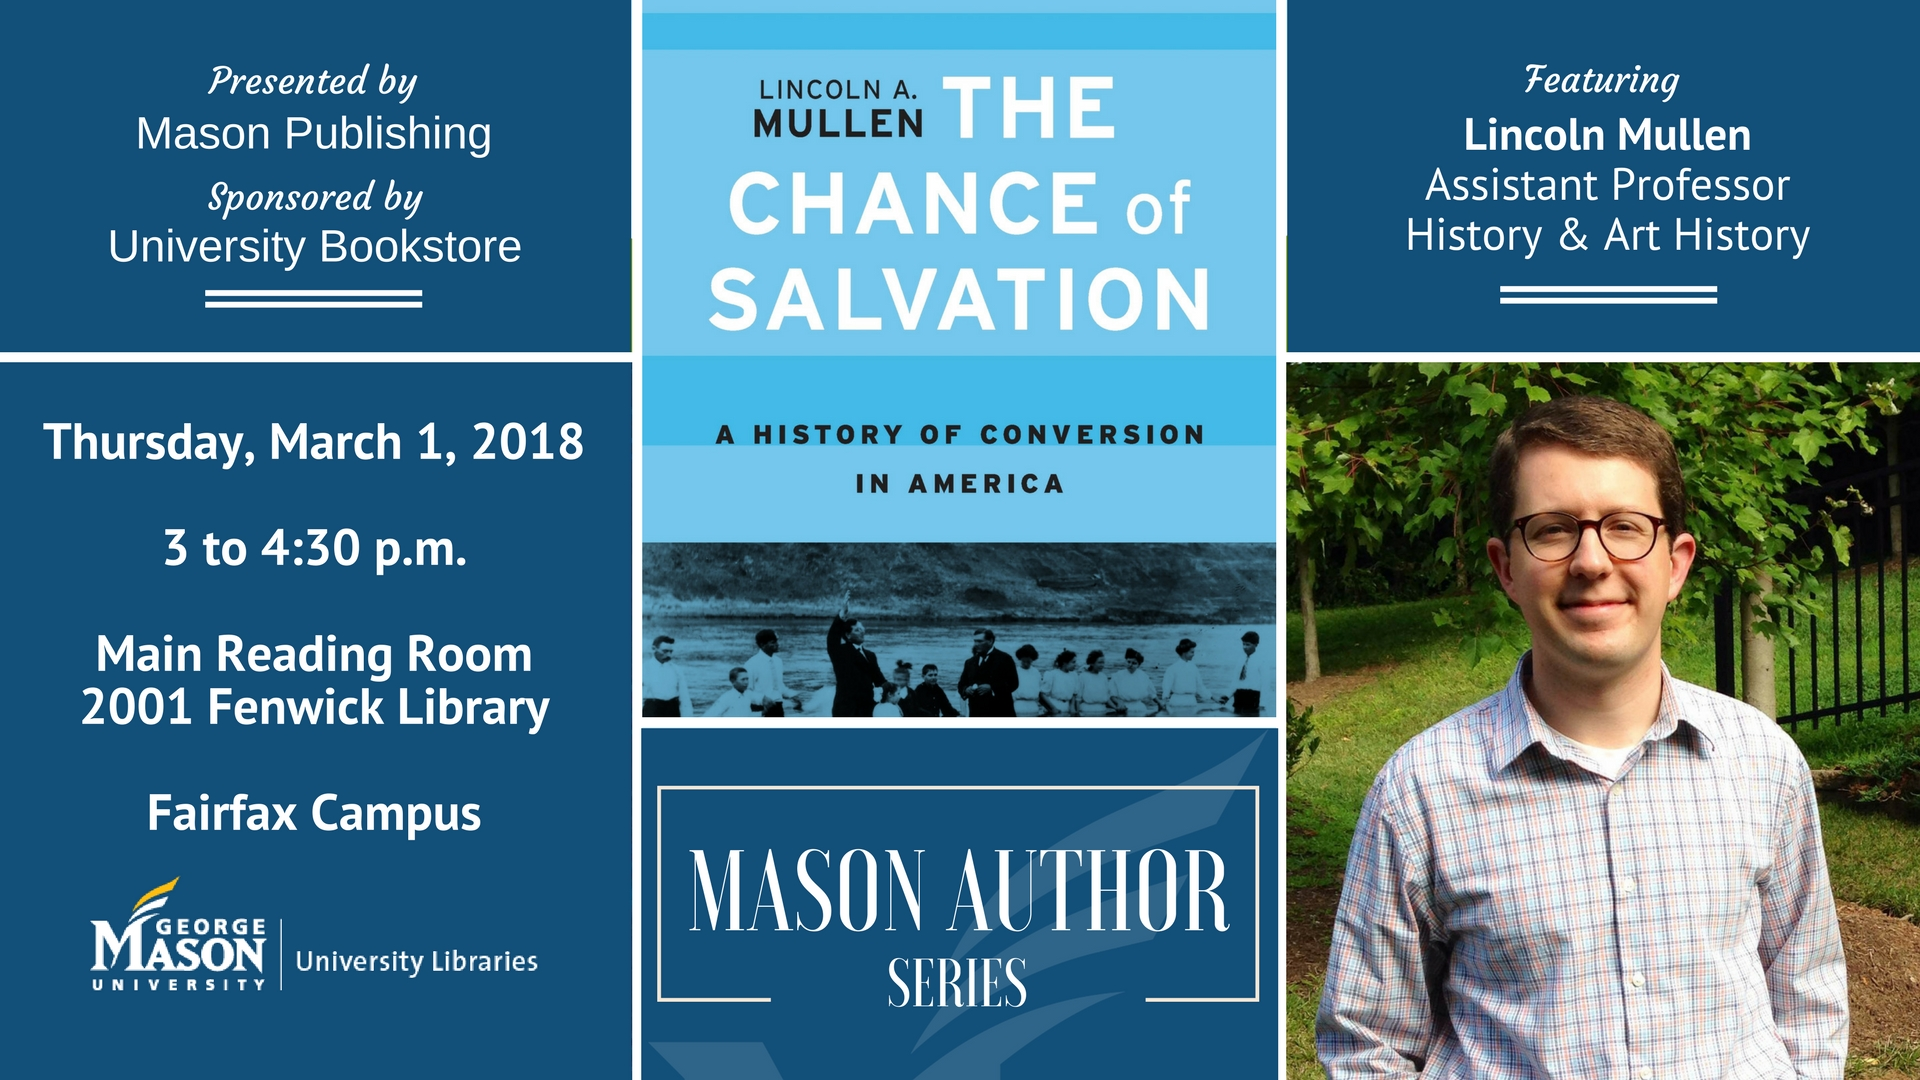 Mason Author Series: Lincoln Mullen